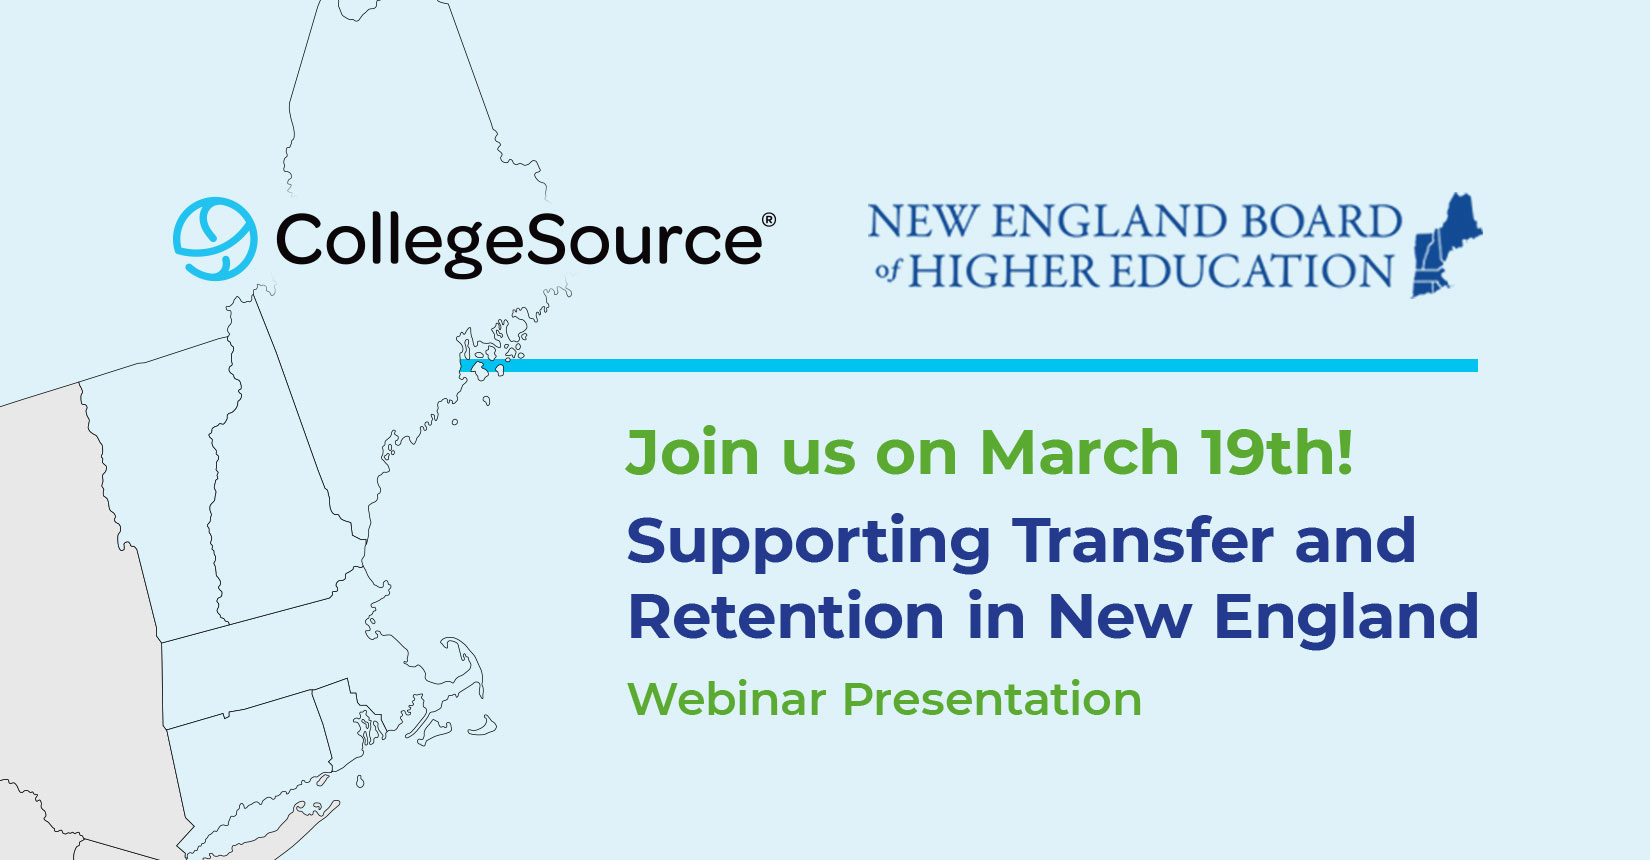 NEBHE-CollegeSource-Partnership-Transfer-Solutions-Webinar